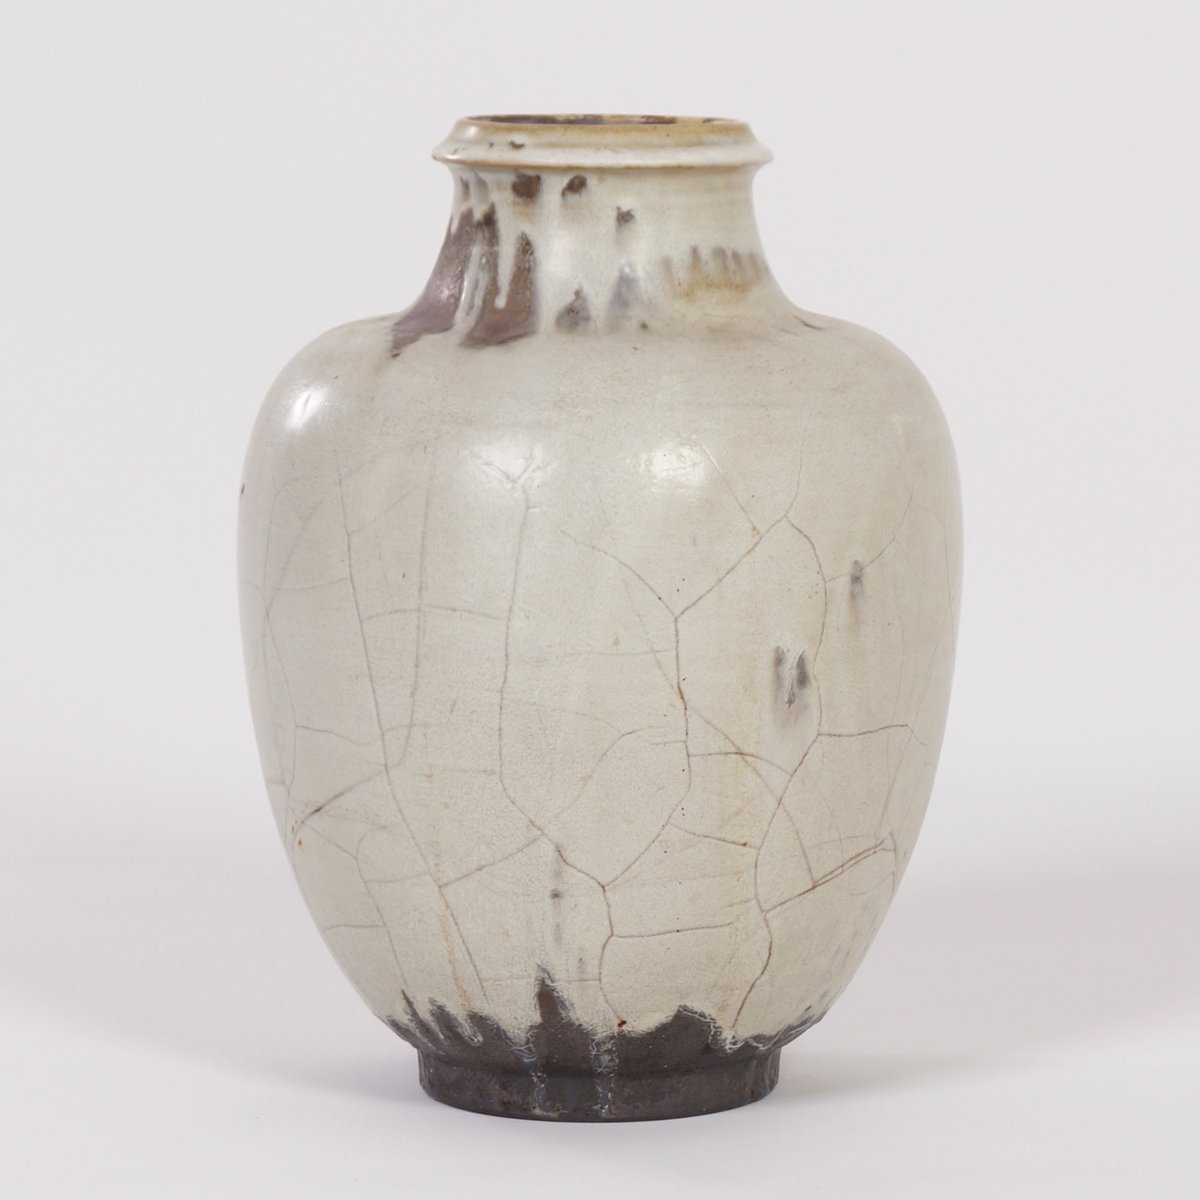 Handmade Ceramic Mobach Vase From Mobach 1930s For Sale